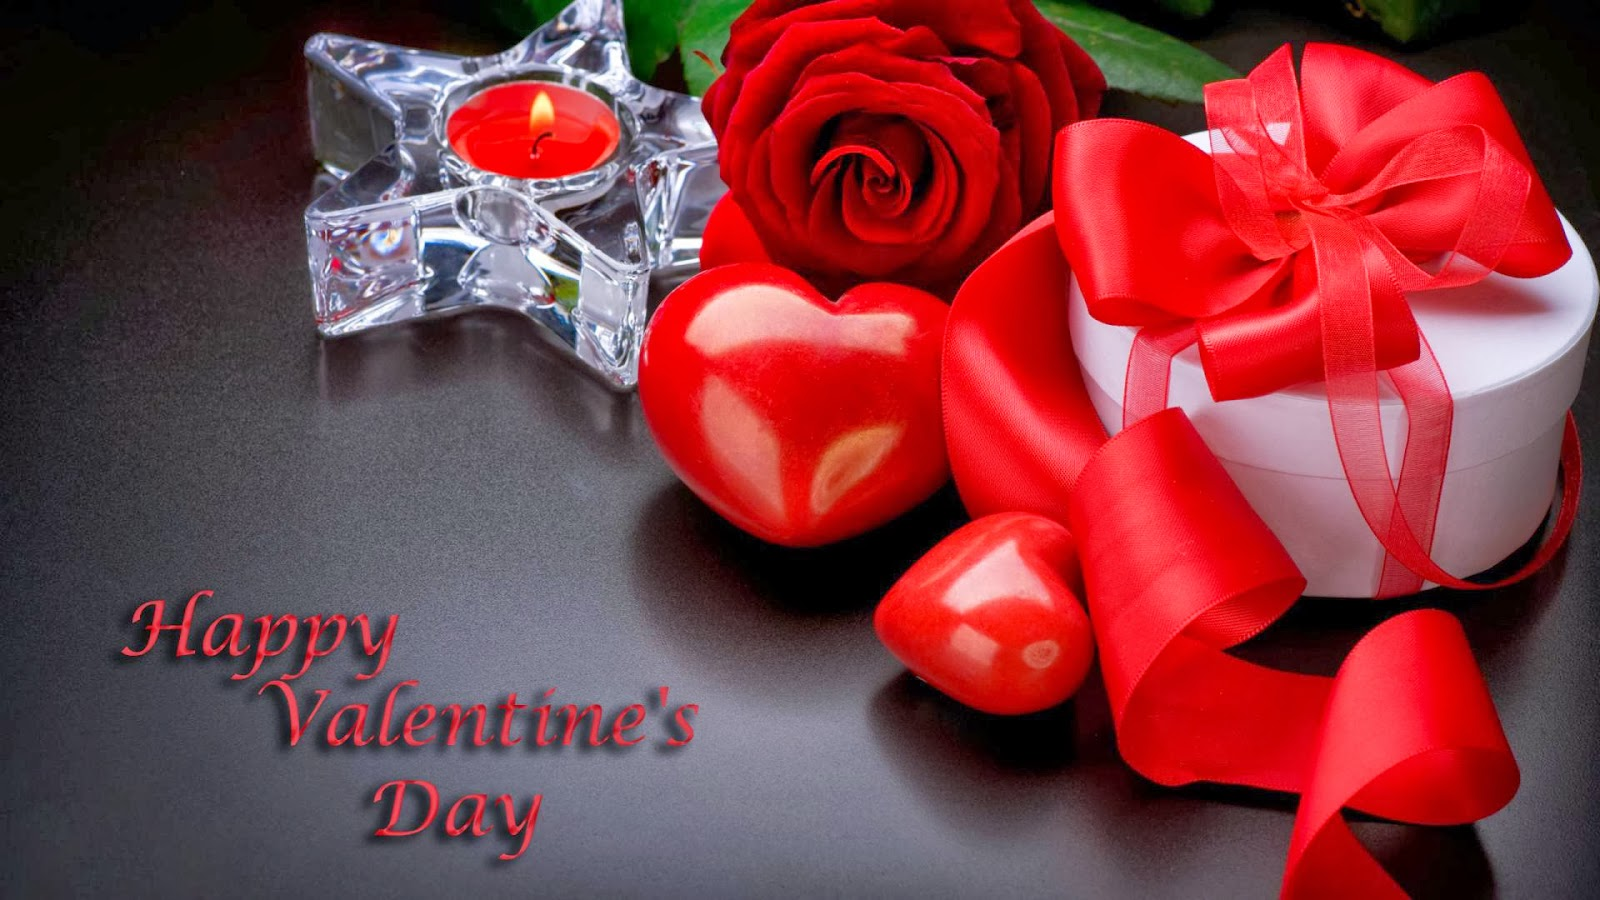 ... Valentines Day Greetigns With Best Quotes Wishes Make Beloved Smile